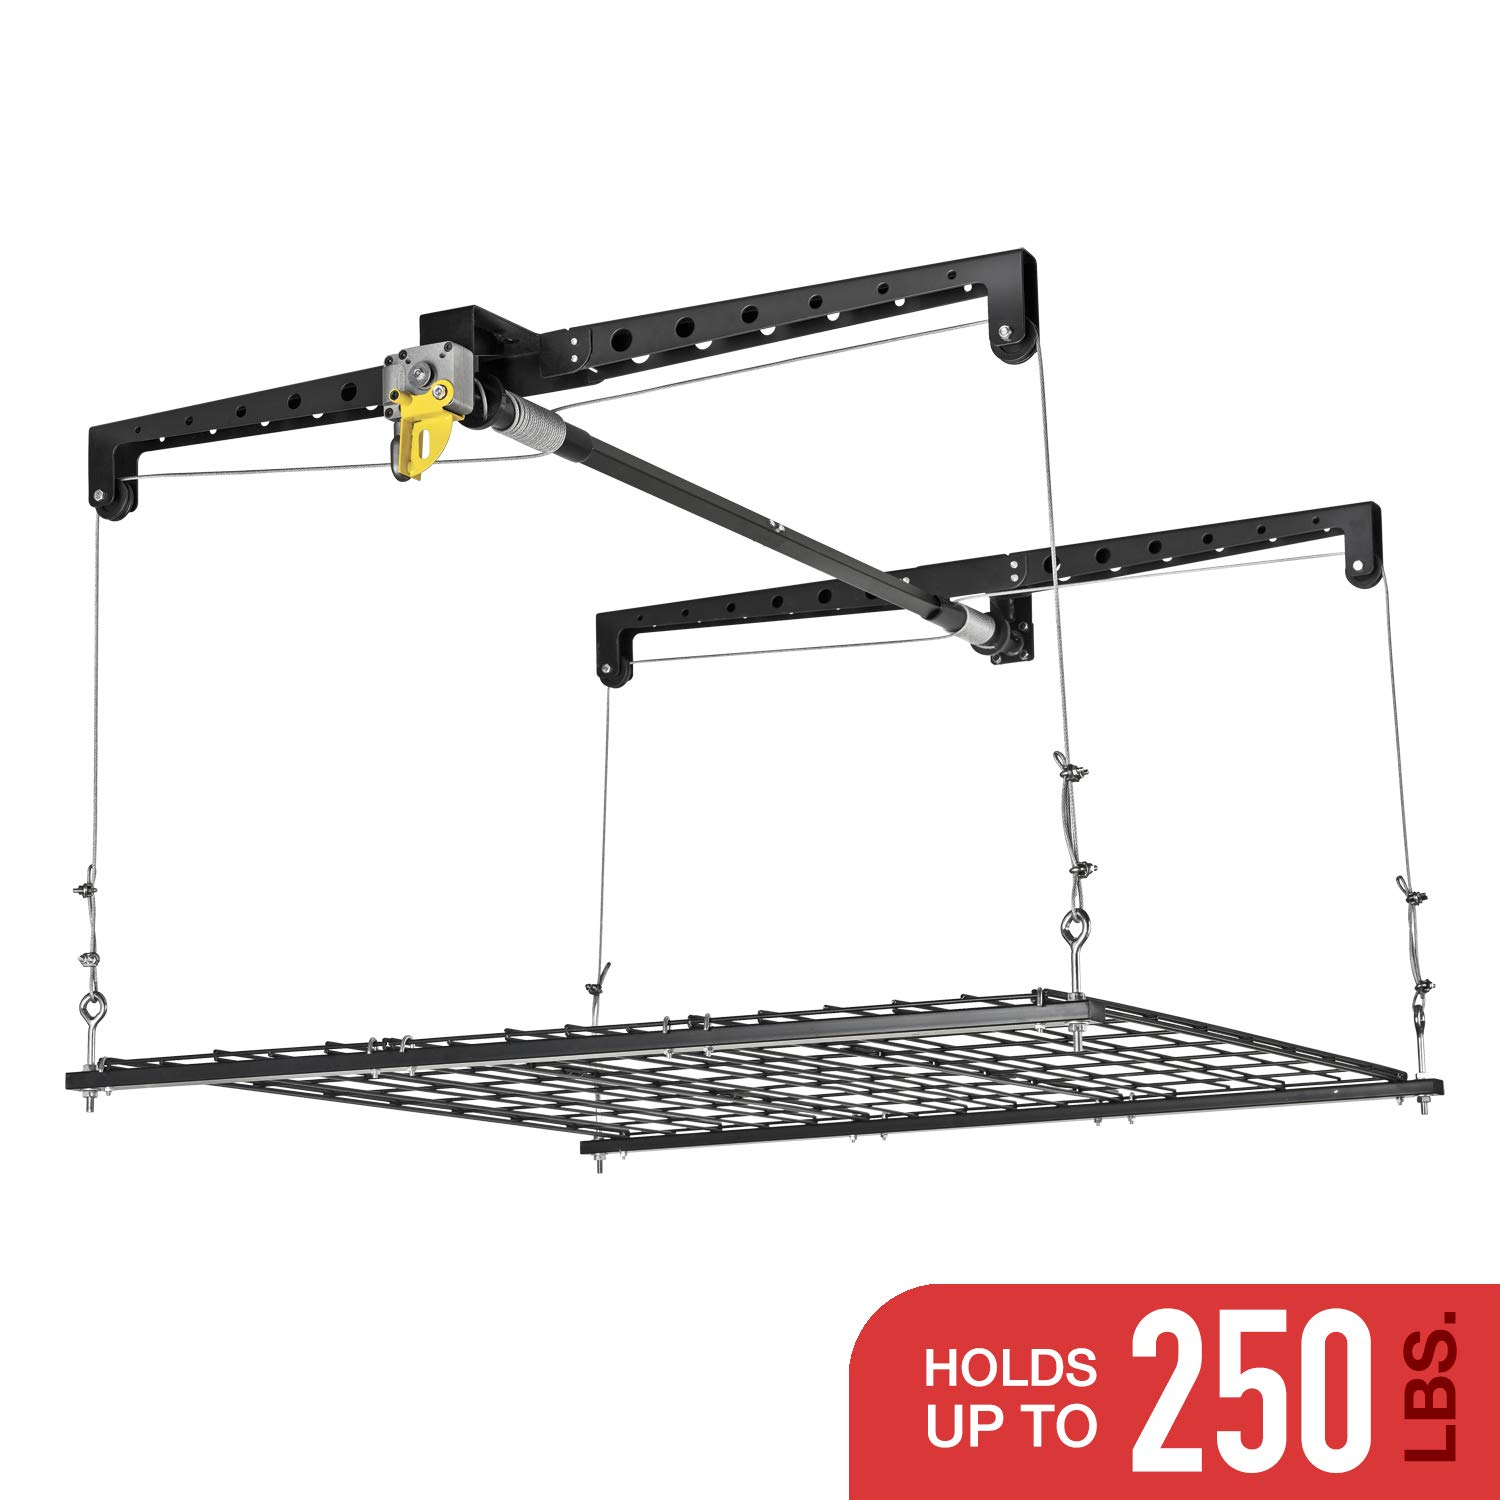 Racor - Ceiling Storage Heavy Lift - Up to 250 lbs by Racor